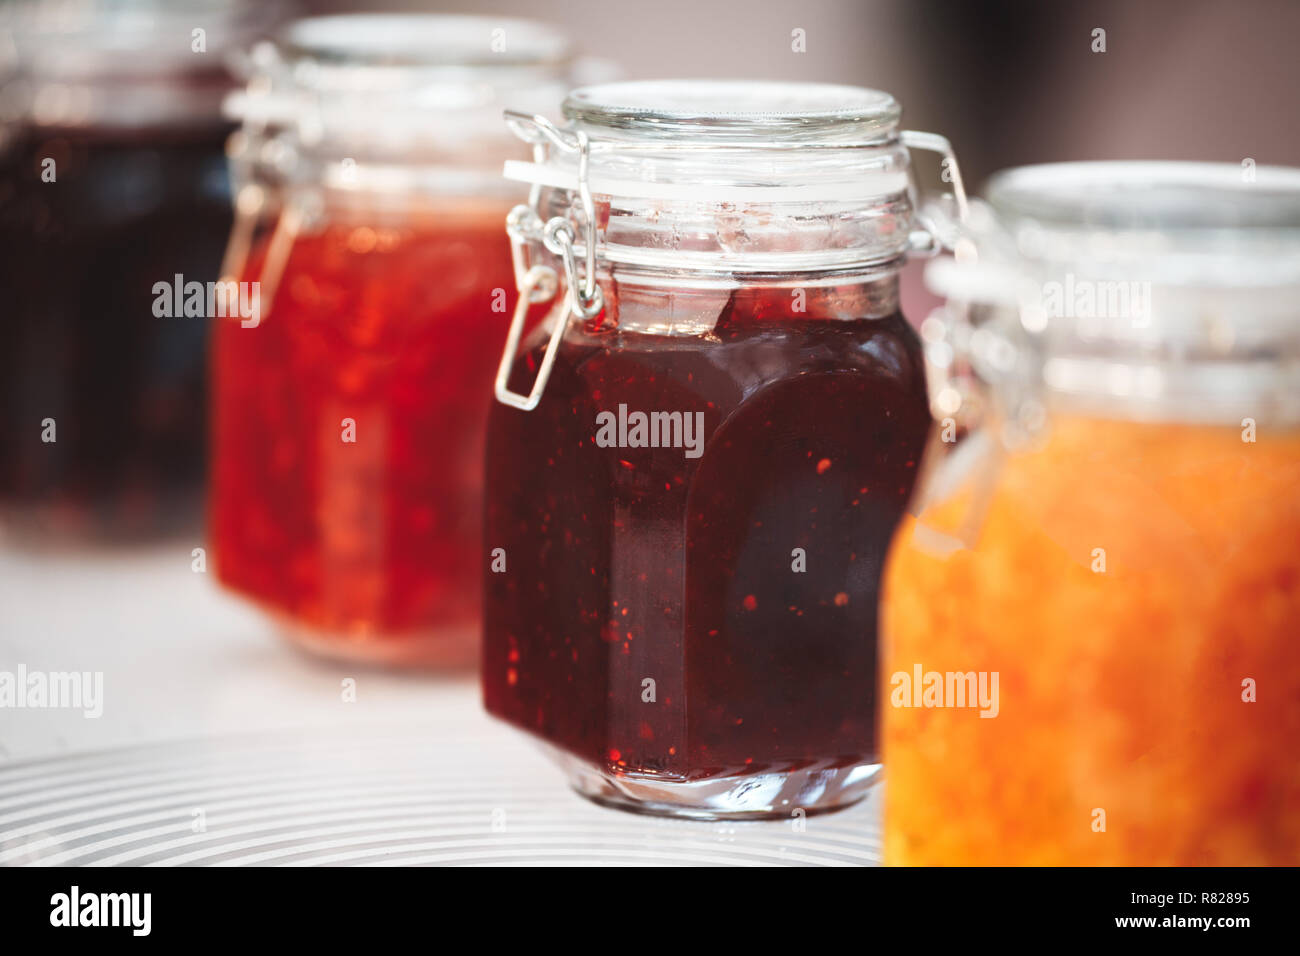 Close-up row of several glass with red yellow orange jars jam conserve confiture pozzy on table, breakfast concept, kitchen background, healthy eating - Stock Image